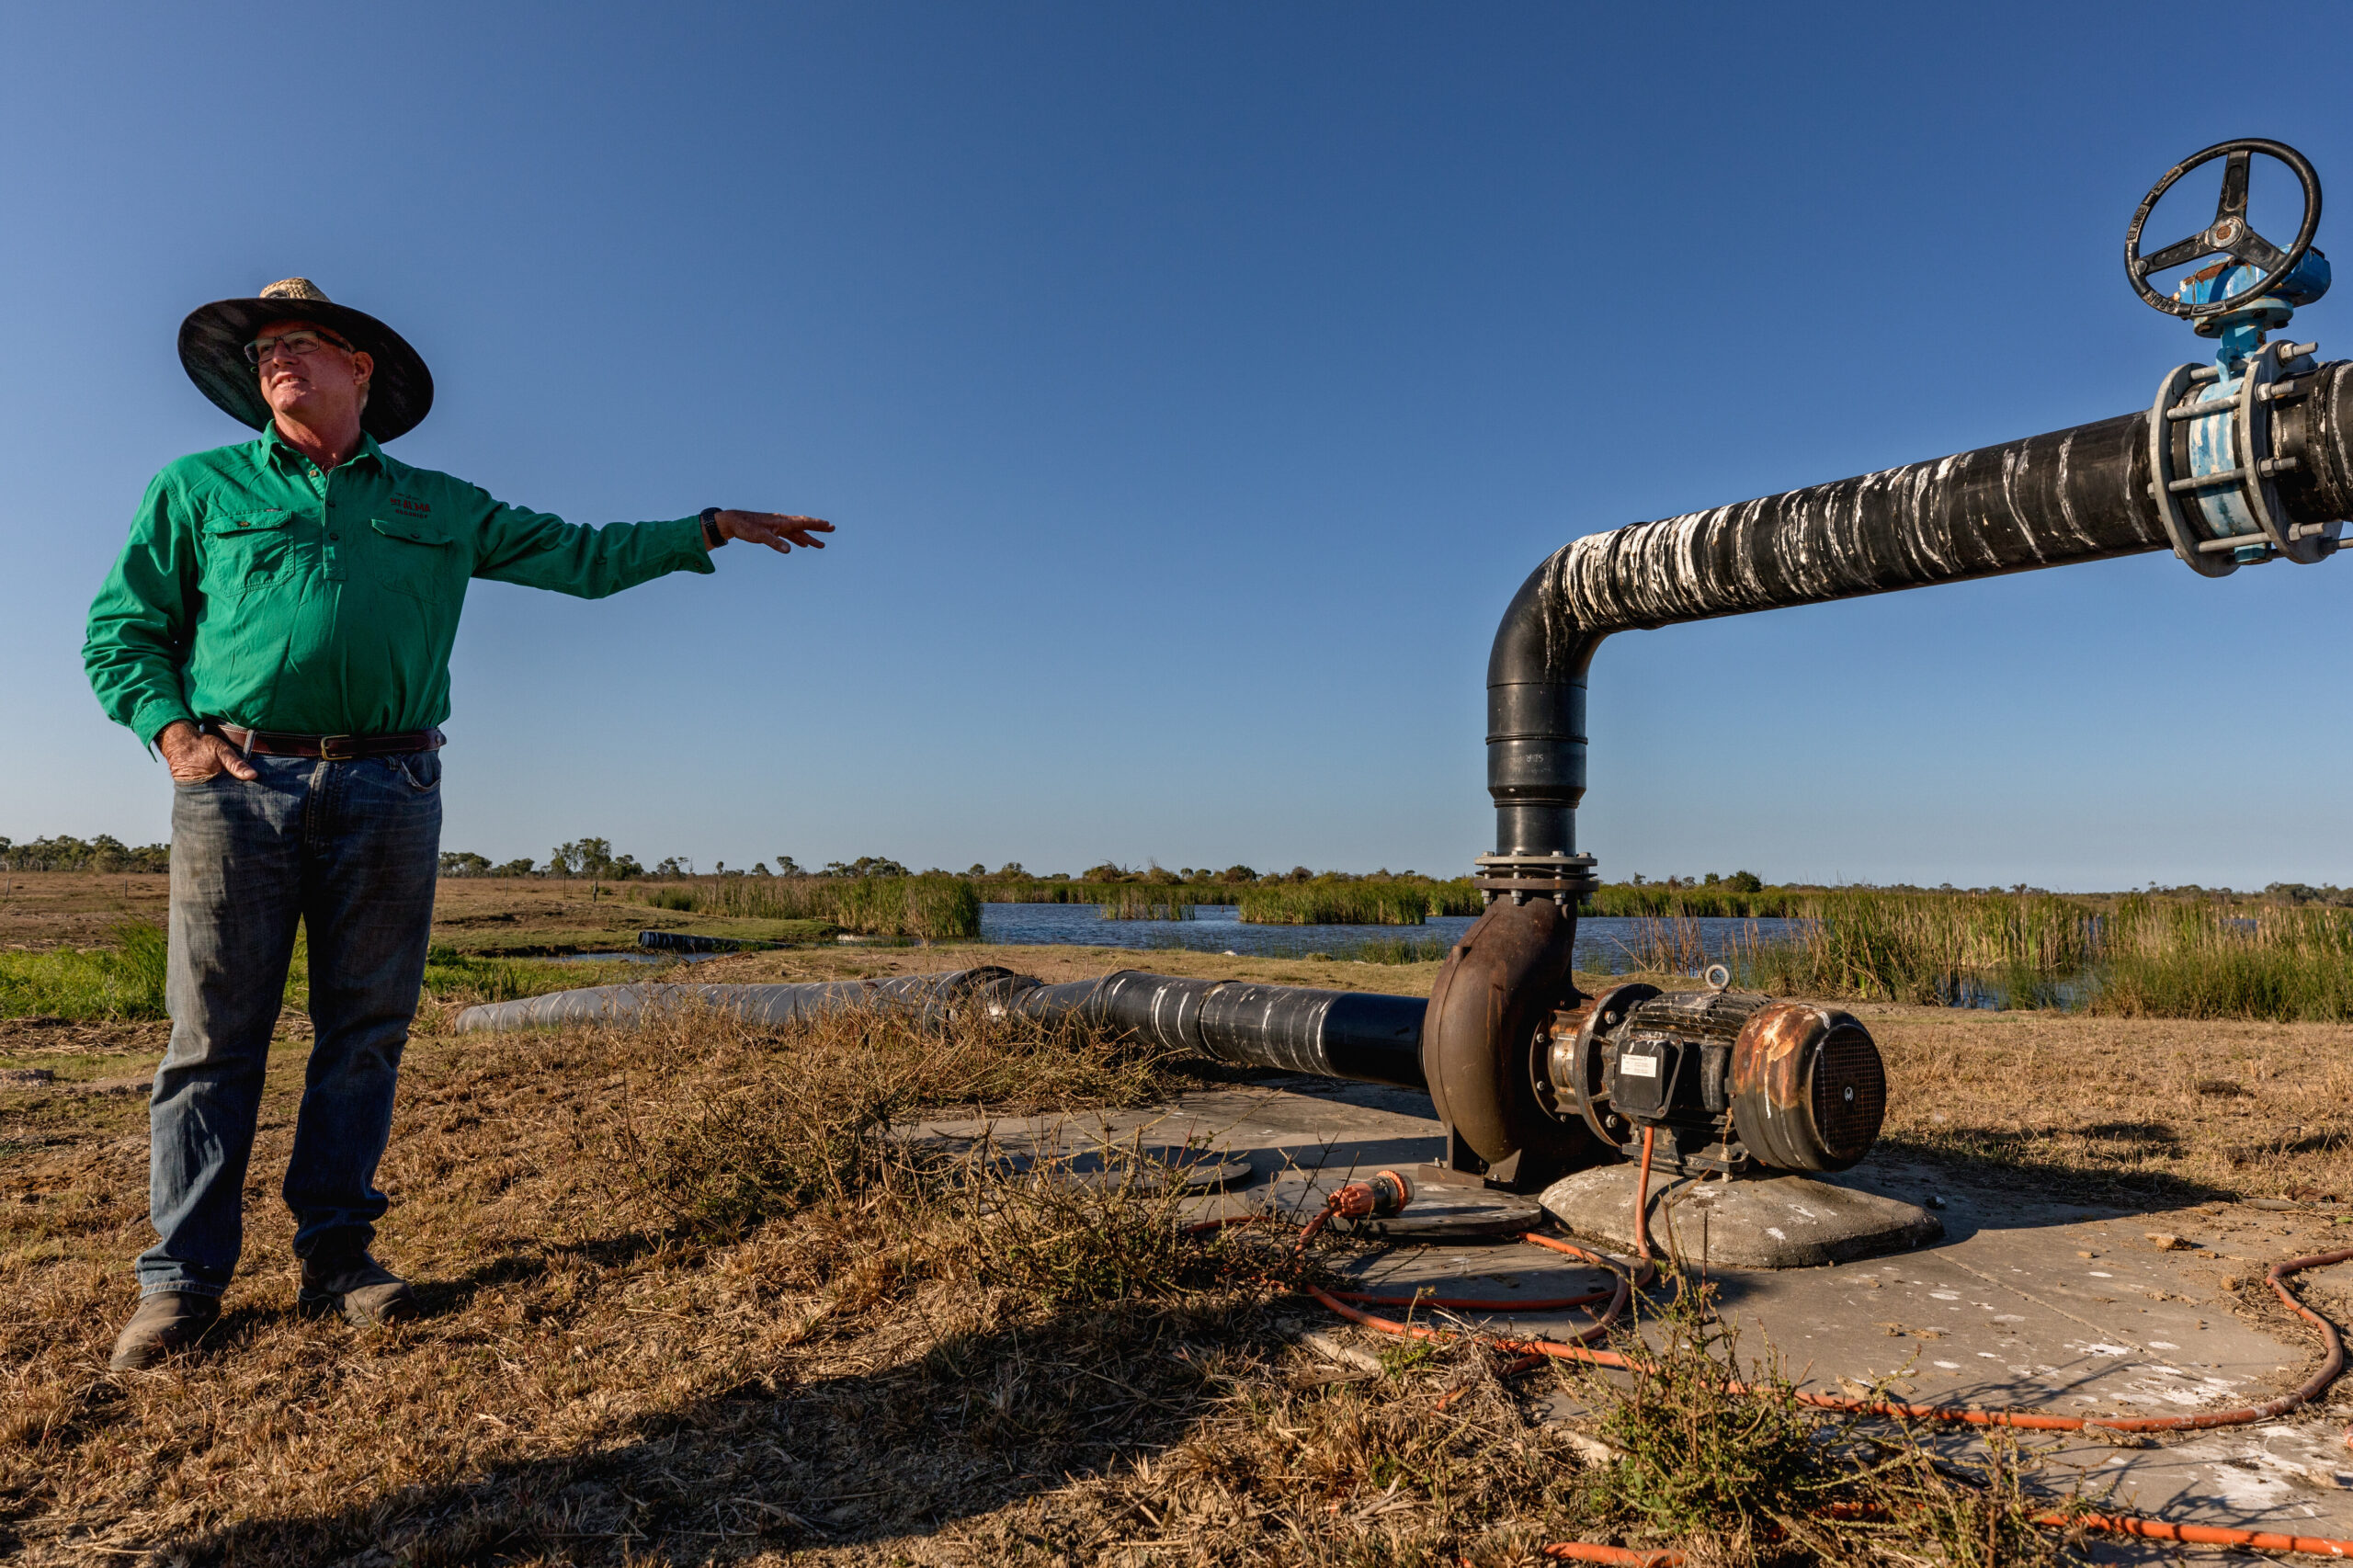 In a dry landscape with little vegetation, backed by a cloudless blue sky, a man stands in blue jeans a green shiry and a cowboy style hat, pointing over to his right, where a large metal pip with a raised section and tap appears to be pumping water to or from the land.